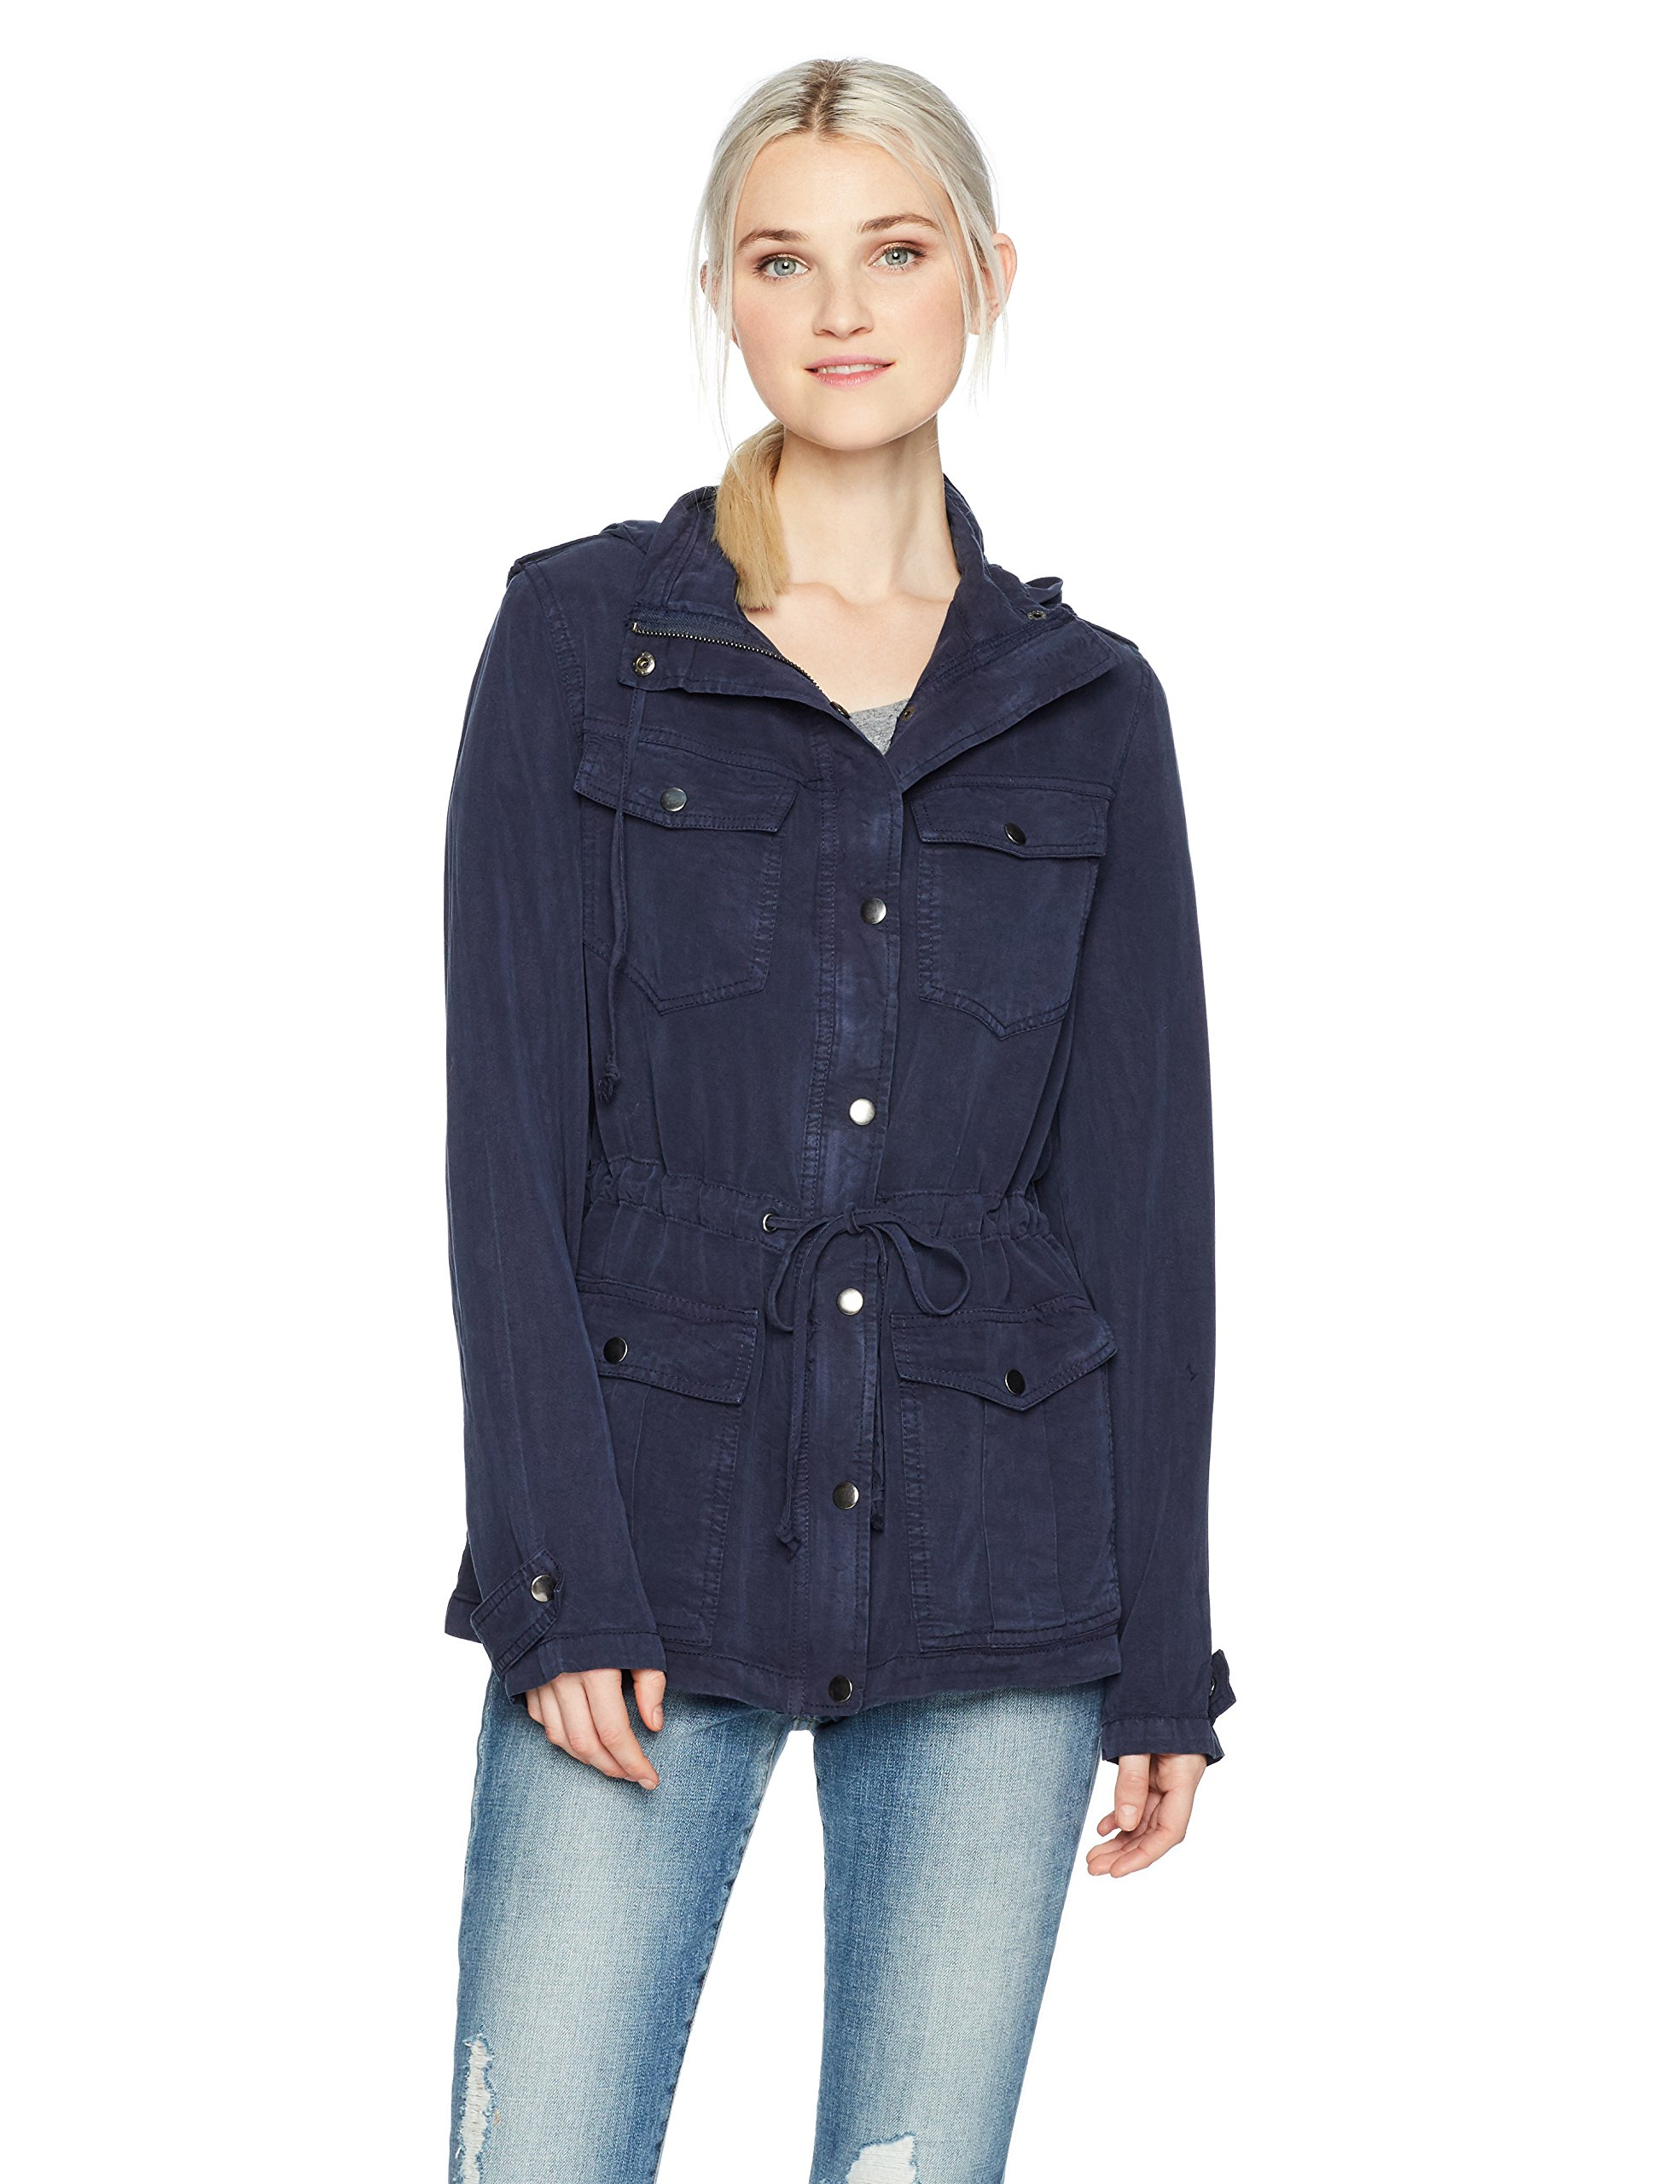 Angie Women's Vintage Wash Jacket, Navy, Medium